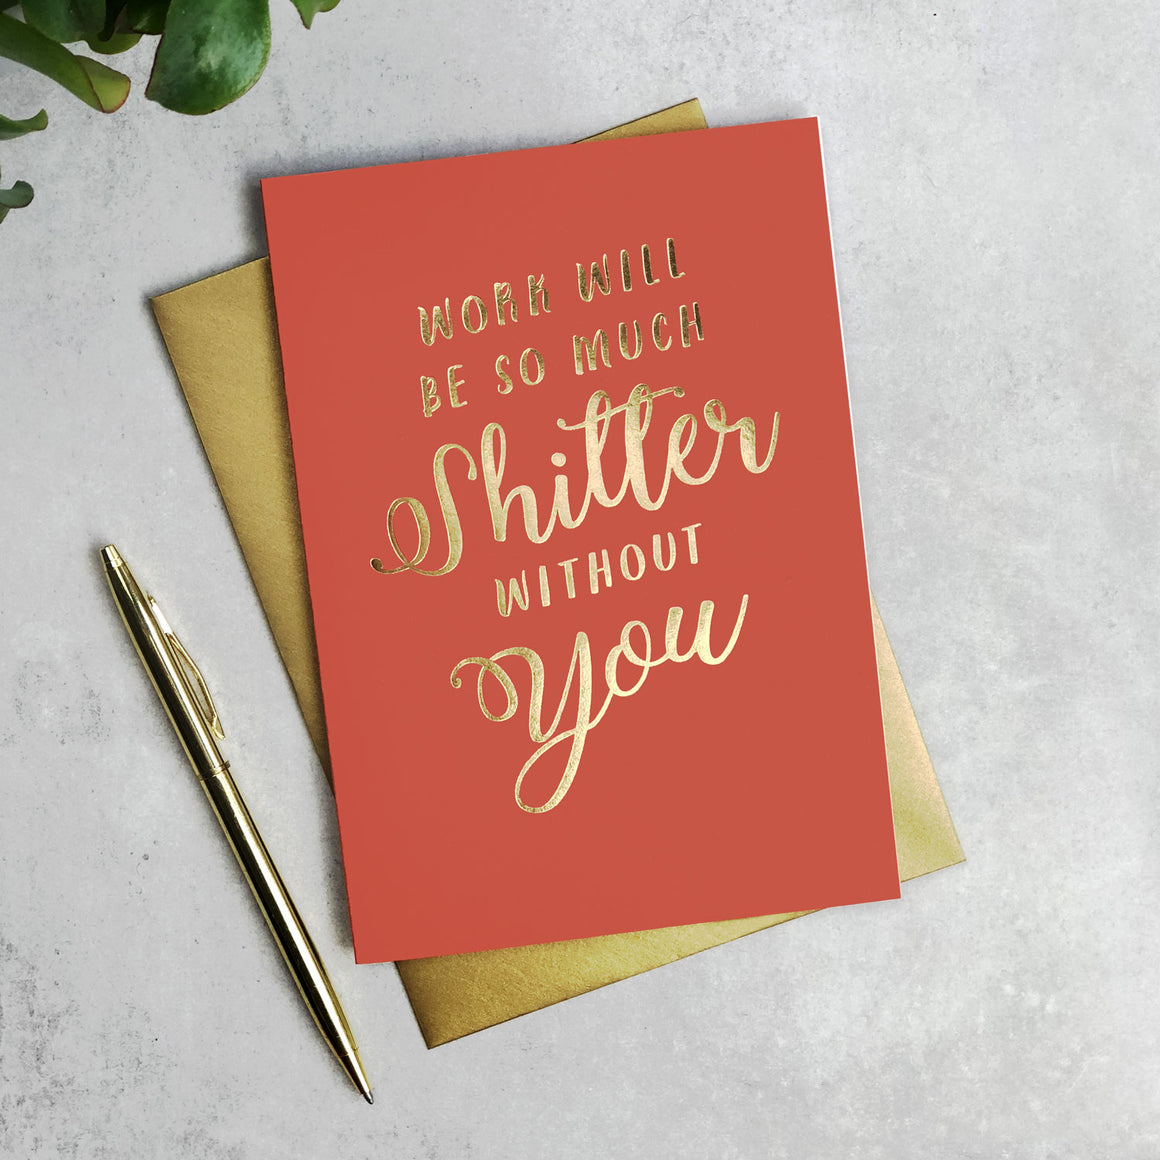 Work Will Be So Much Shitter Without You calligraphy card